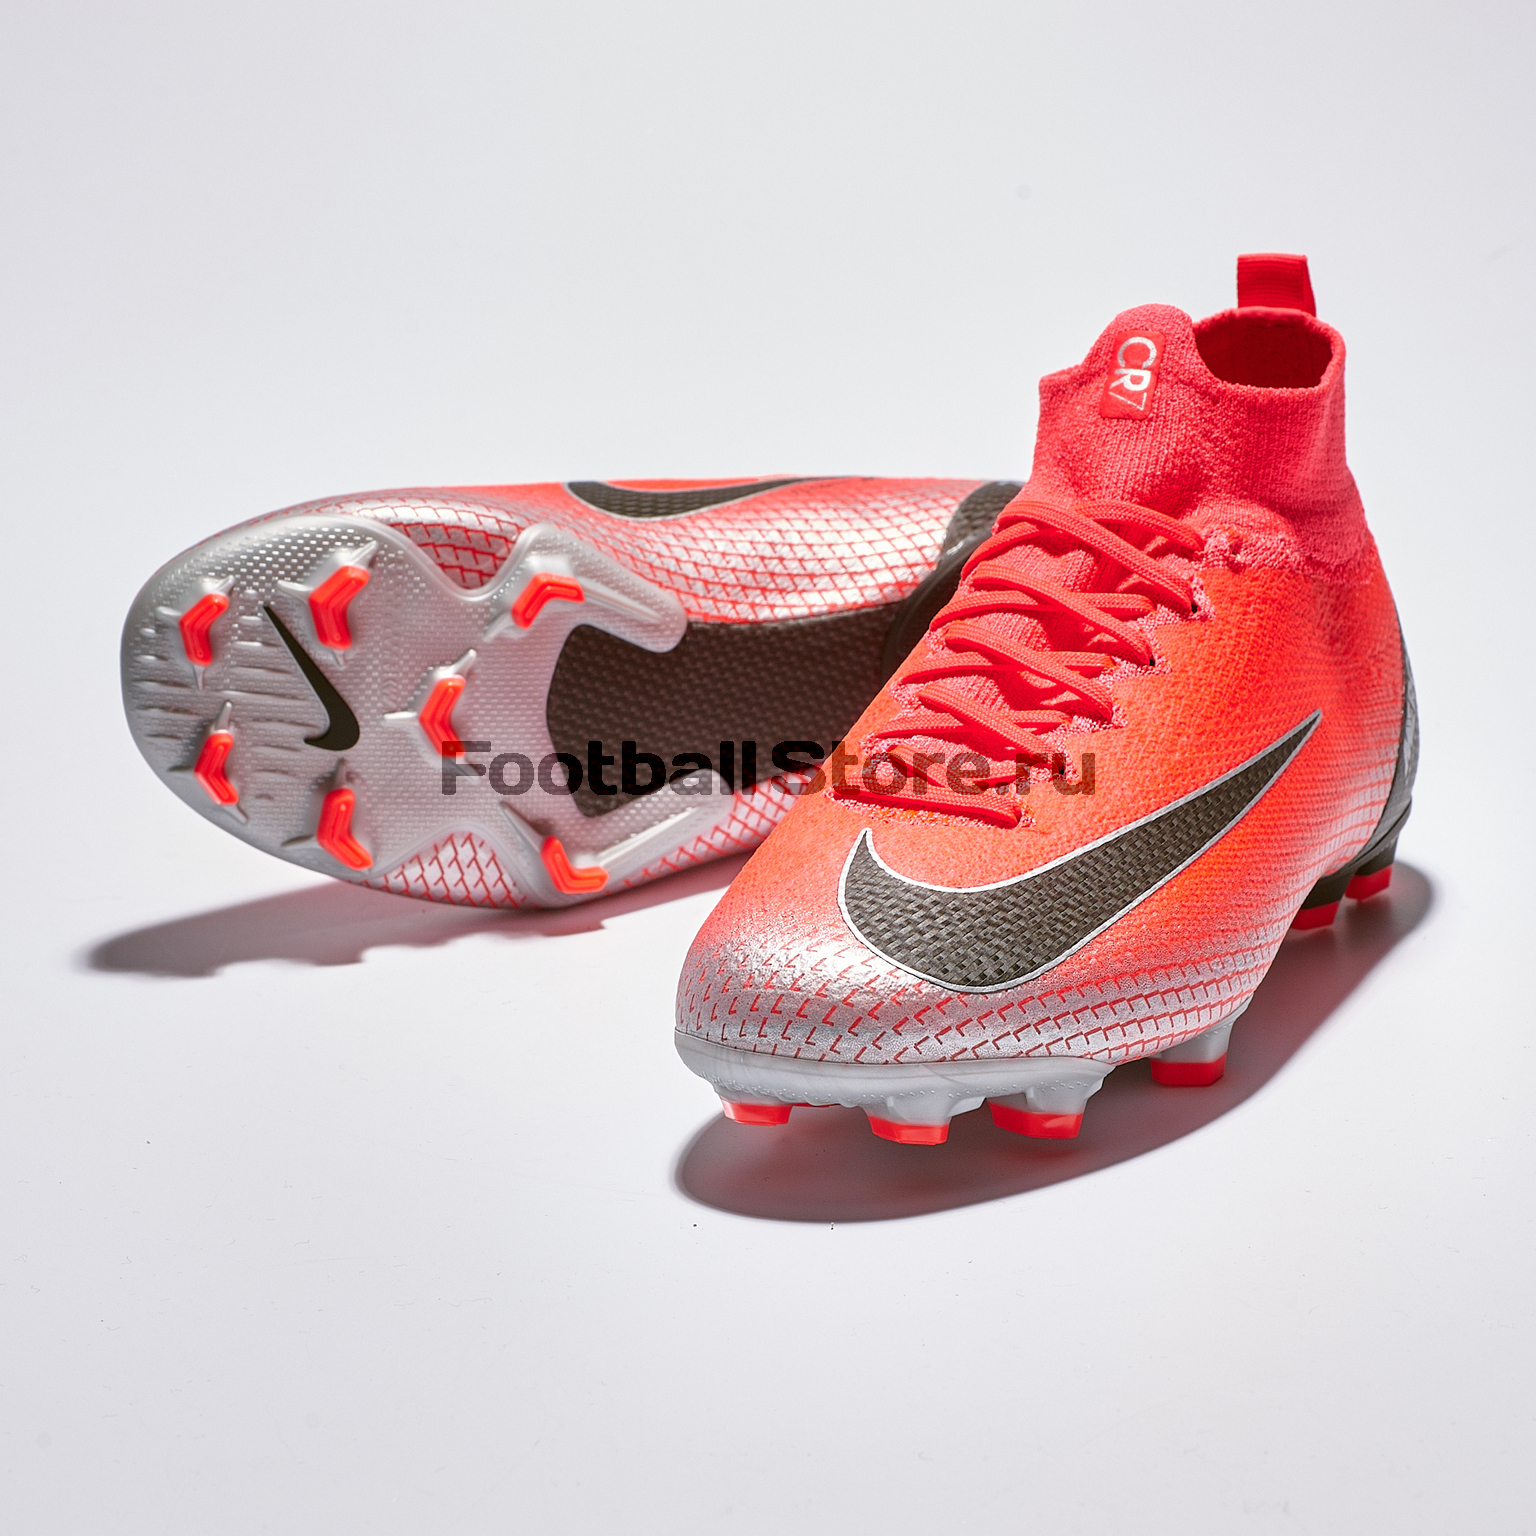 Бутсы детские Nike Superfly 6 Elite CR7 FG AJ3086-600 бутсы nike mercurial victory cr7 indoor